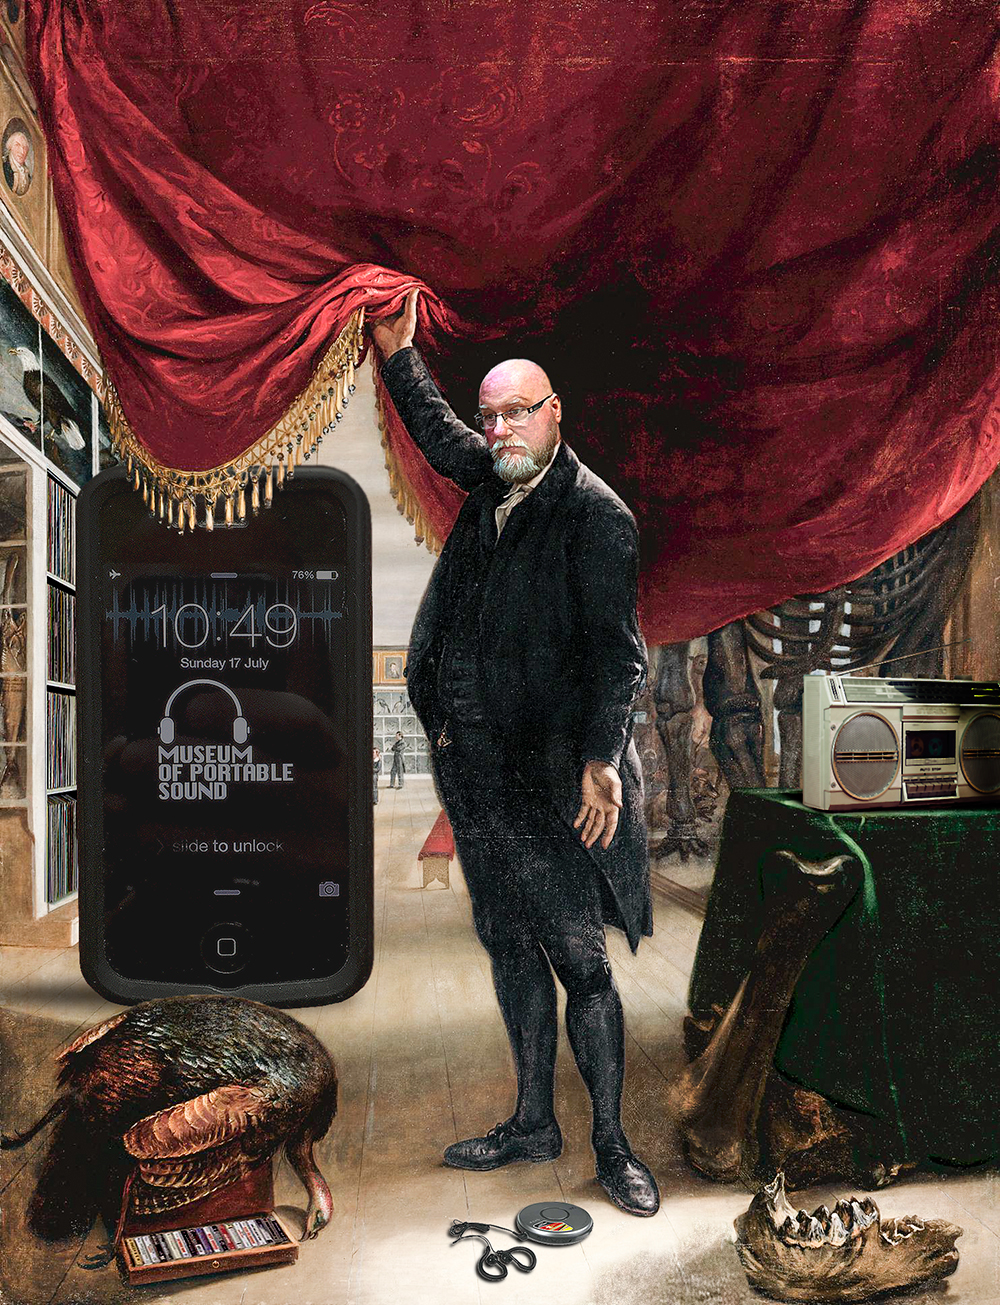 'The Artist In Front Of His Museum' - after C.W. Peale, 1822